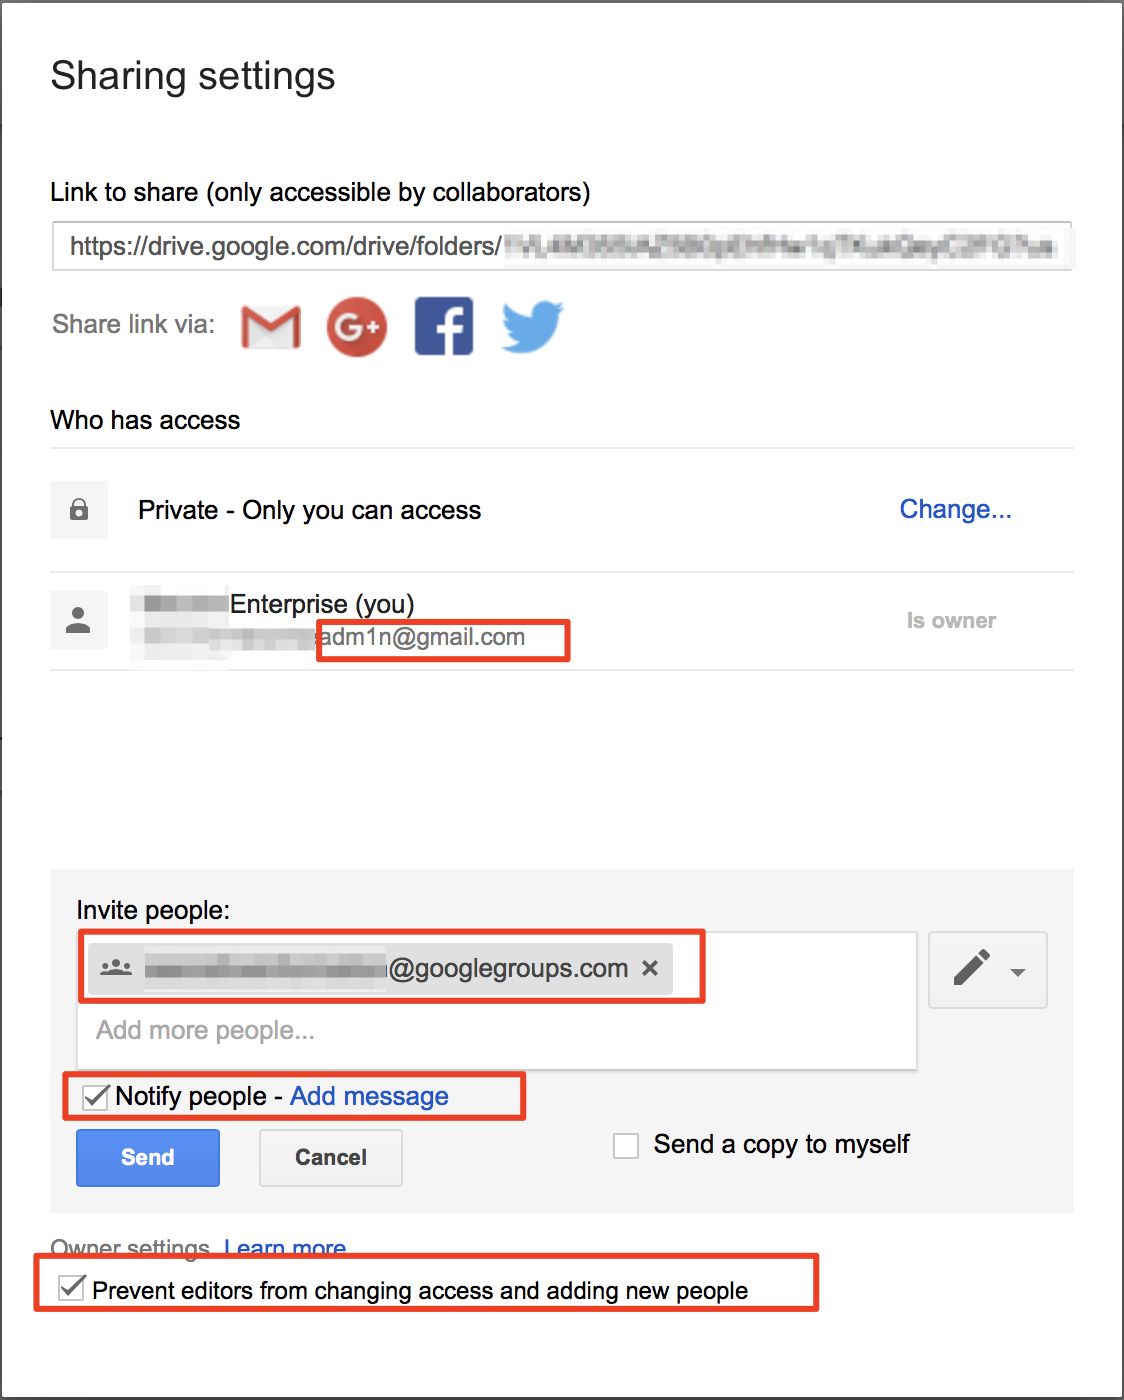 How to Securely Configure Google Drive to Share with a